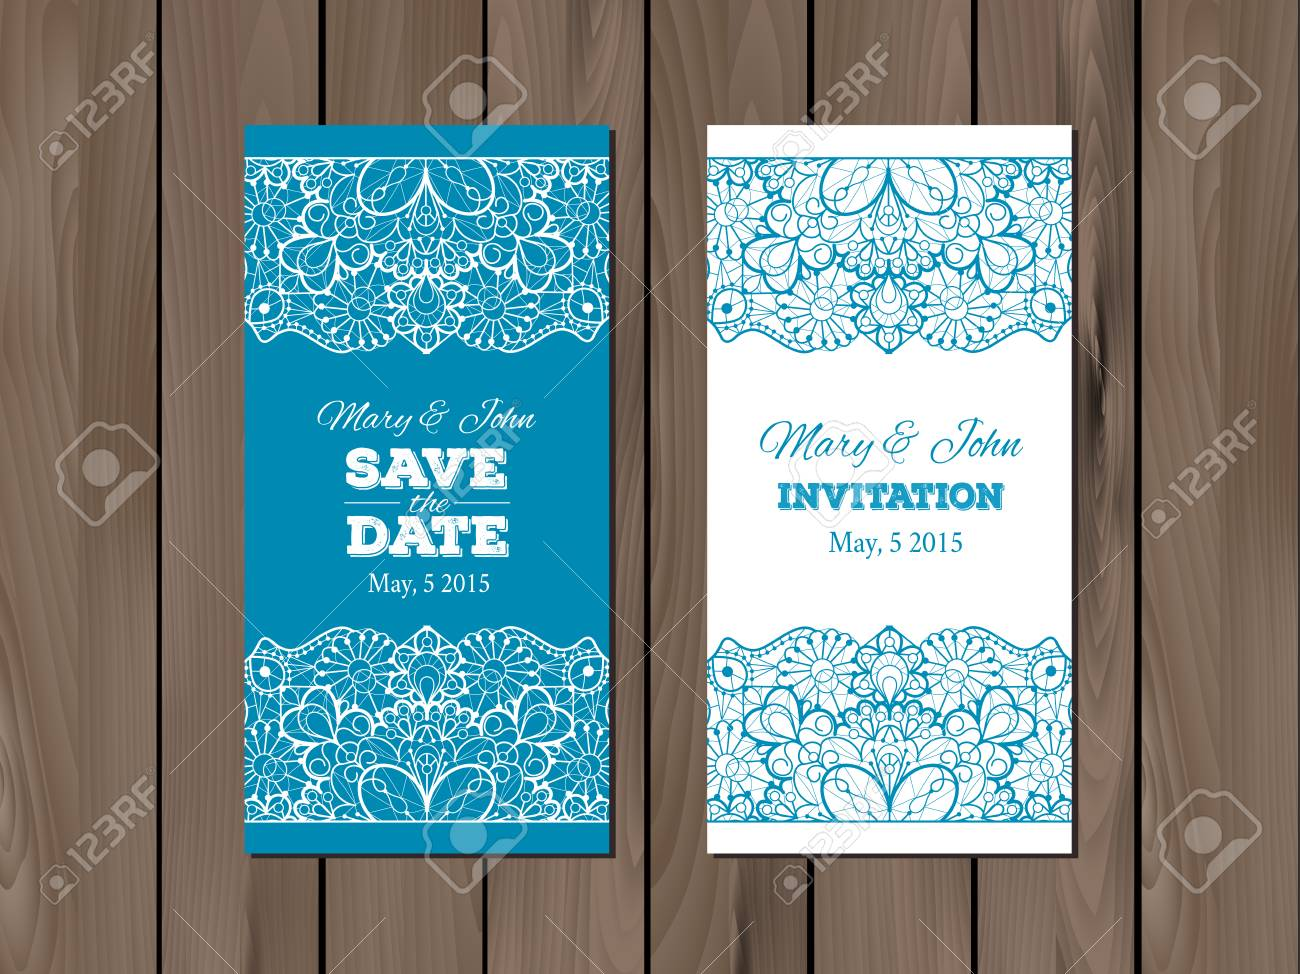 vector wedding invitation save the date card template on a wooden background